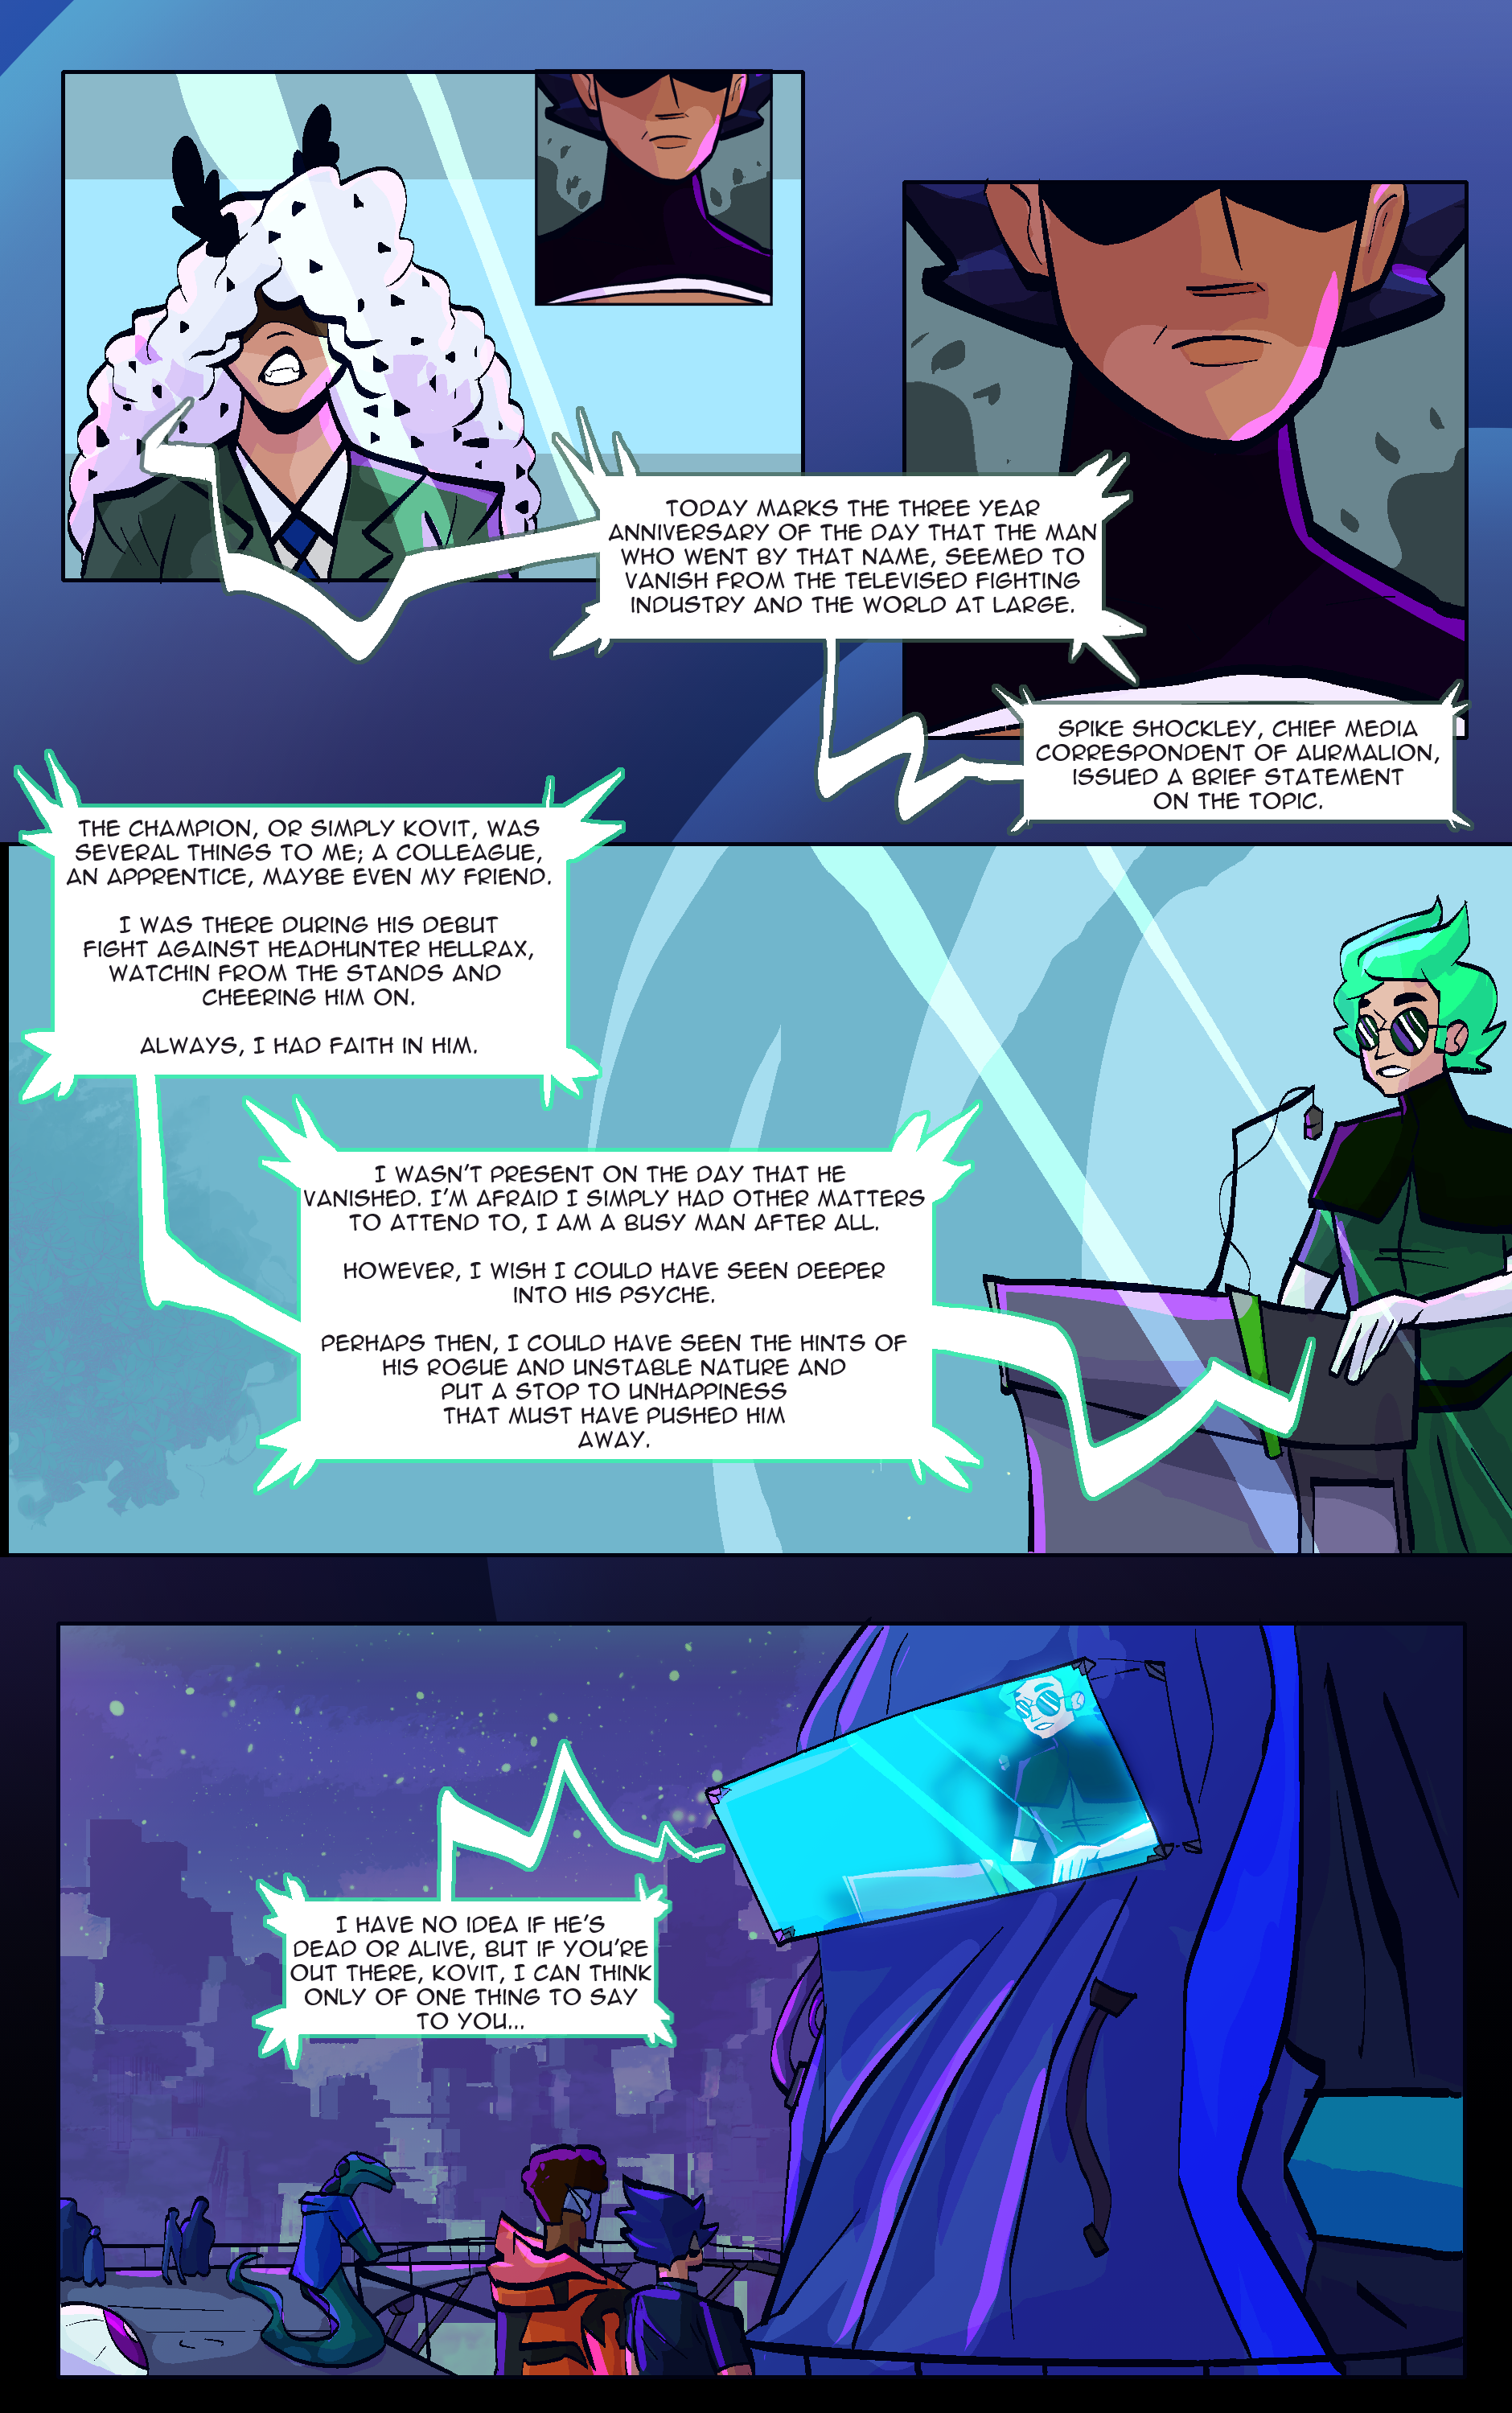 Chapter 2 - Ep. 12